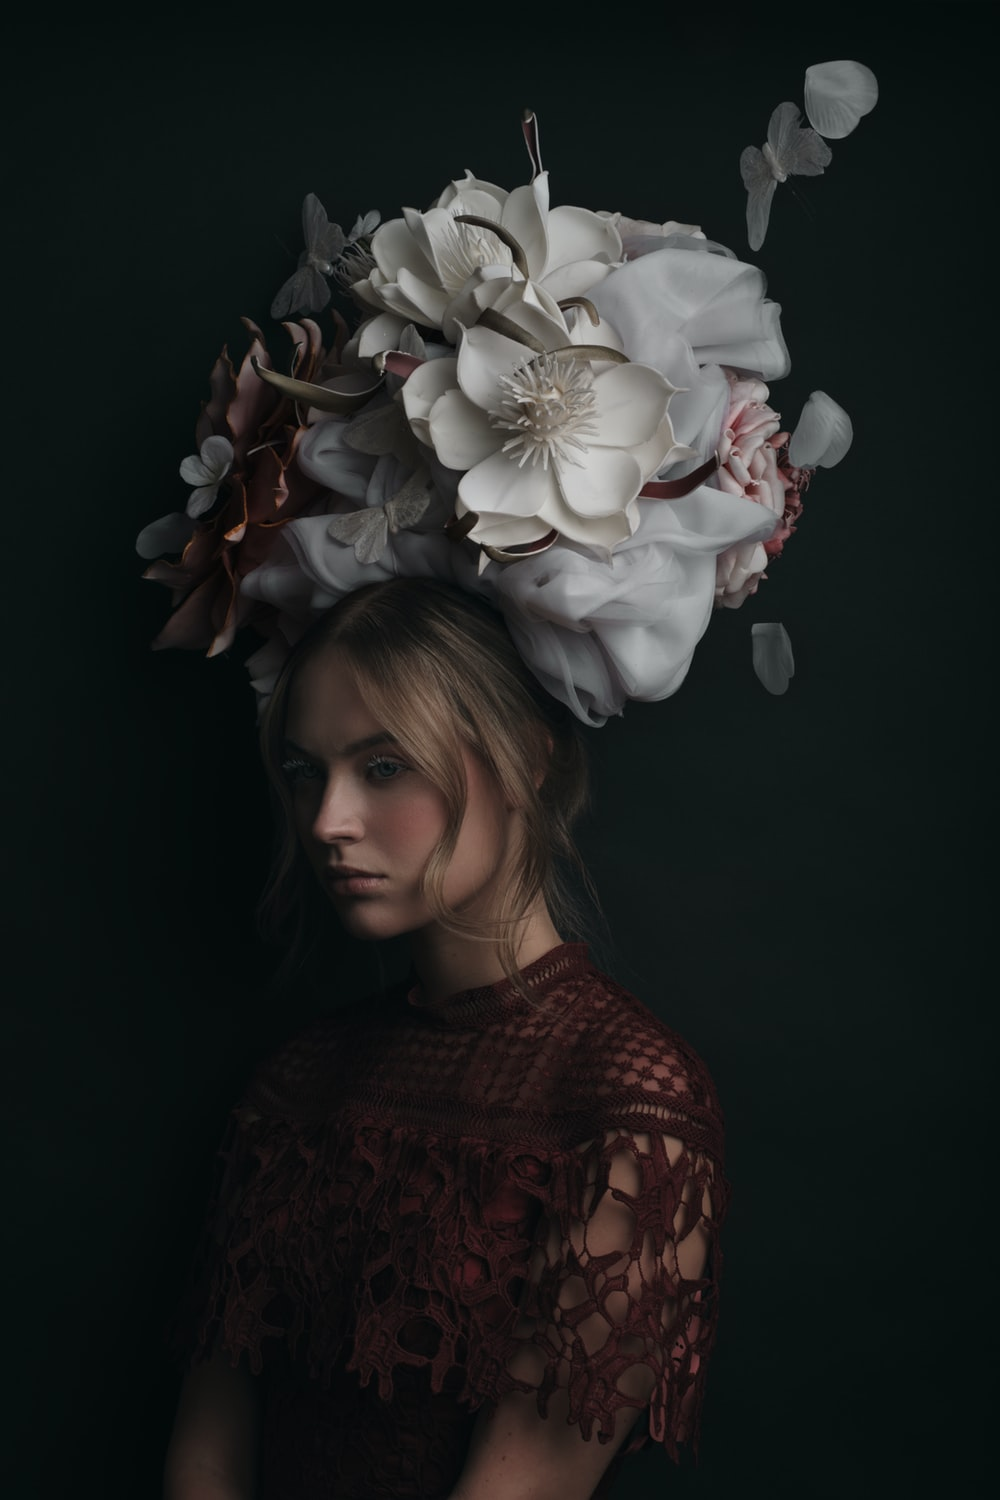 woman in red and black sweater with white flower on head